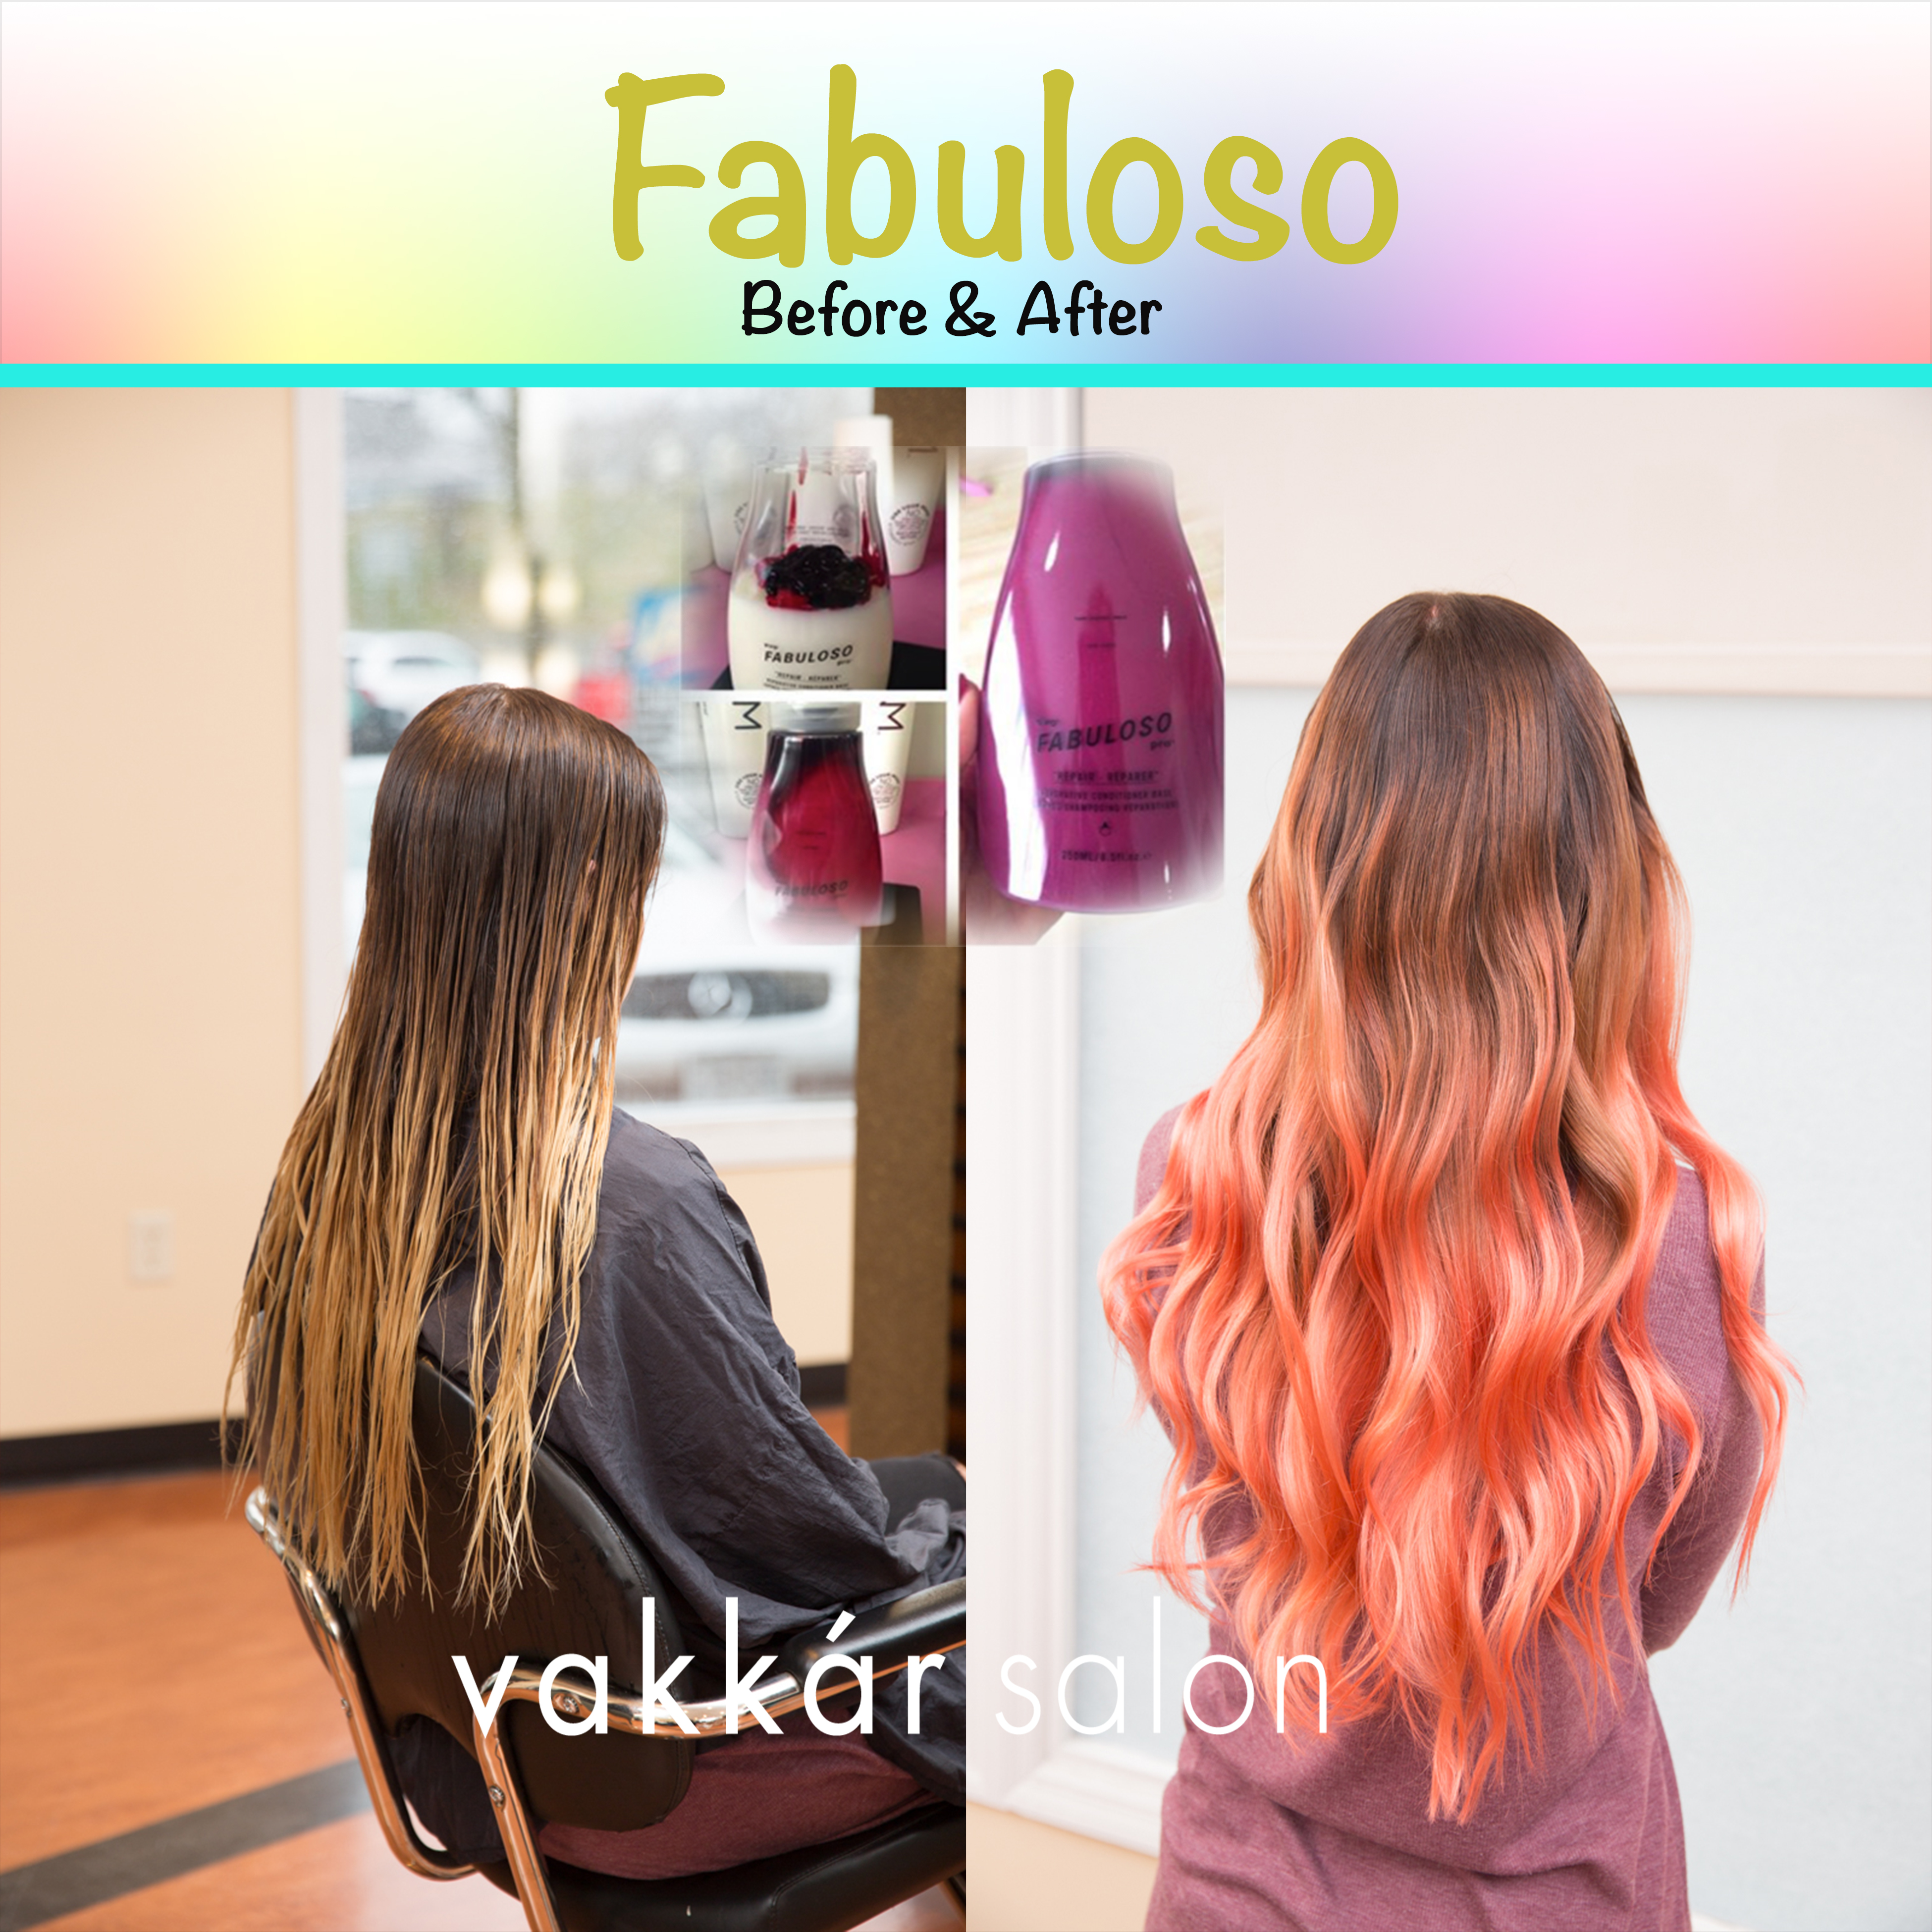 Fabuloso-Before After